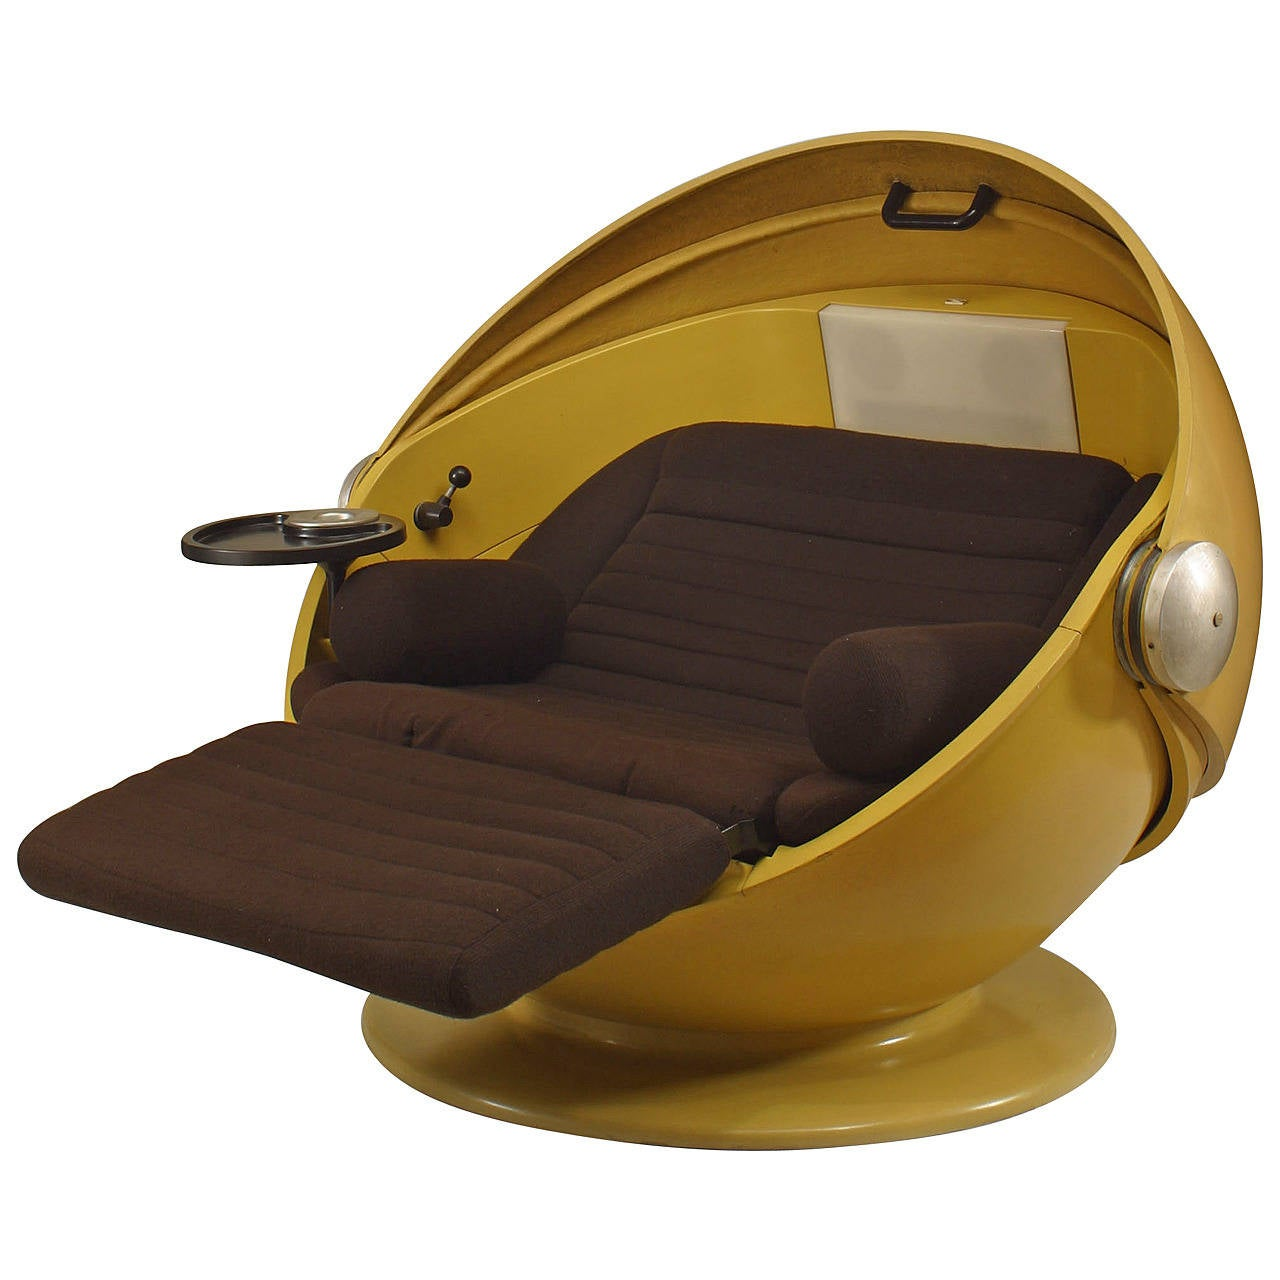 Rare and Unusual 1969 German Futuristic Spherical Chaise by Ris and  Selldorf For Sale